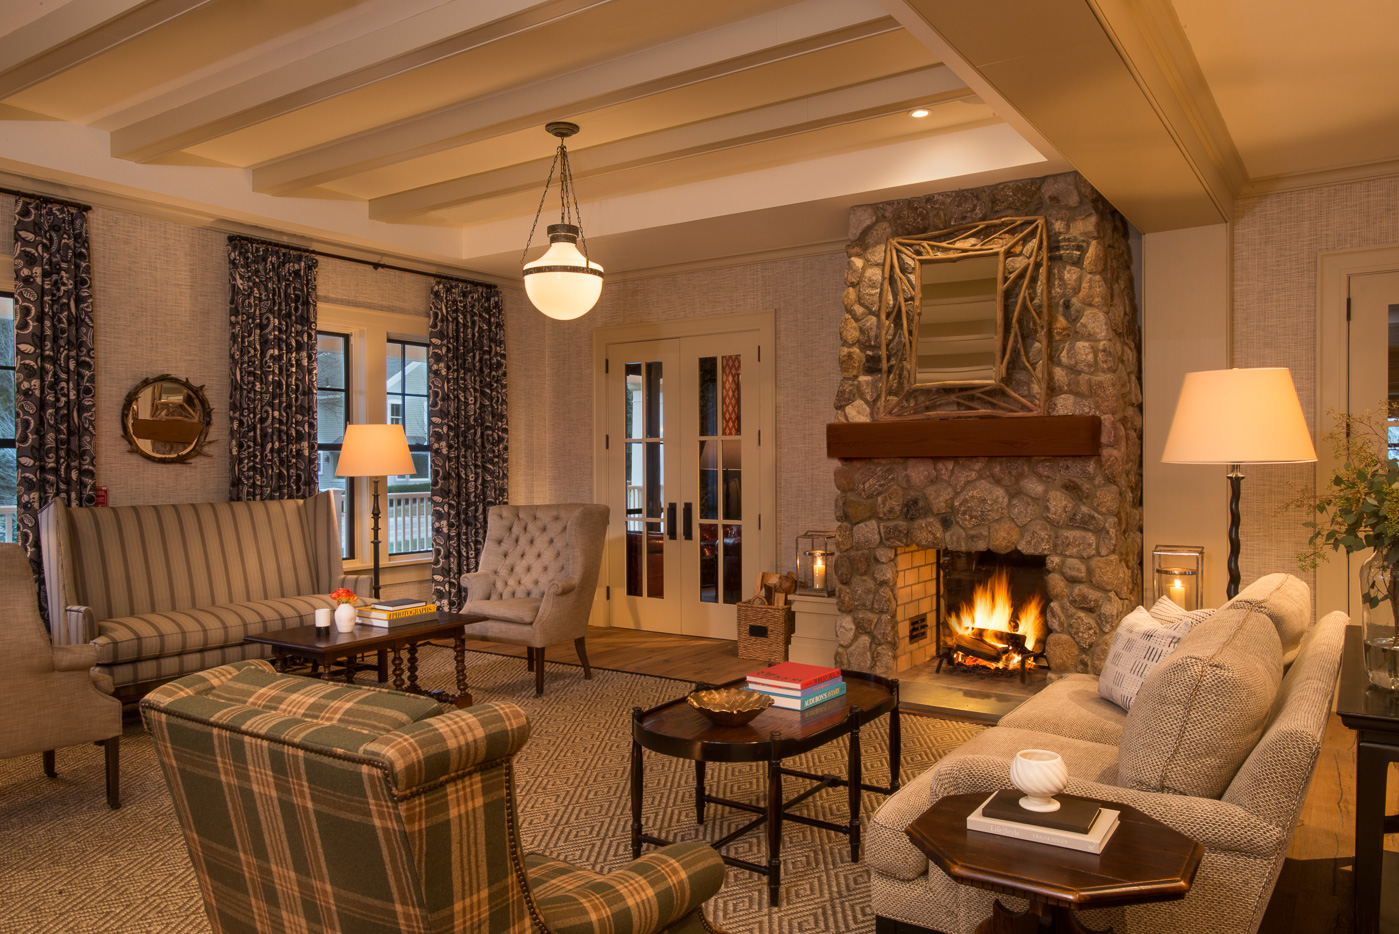 Taconic hotel manchester vermont popular new york city for The family room vermont